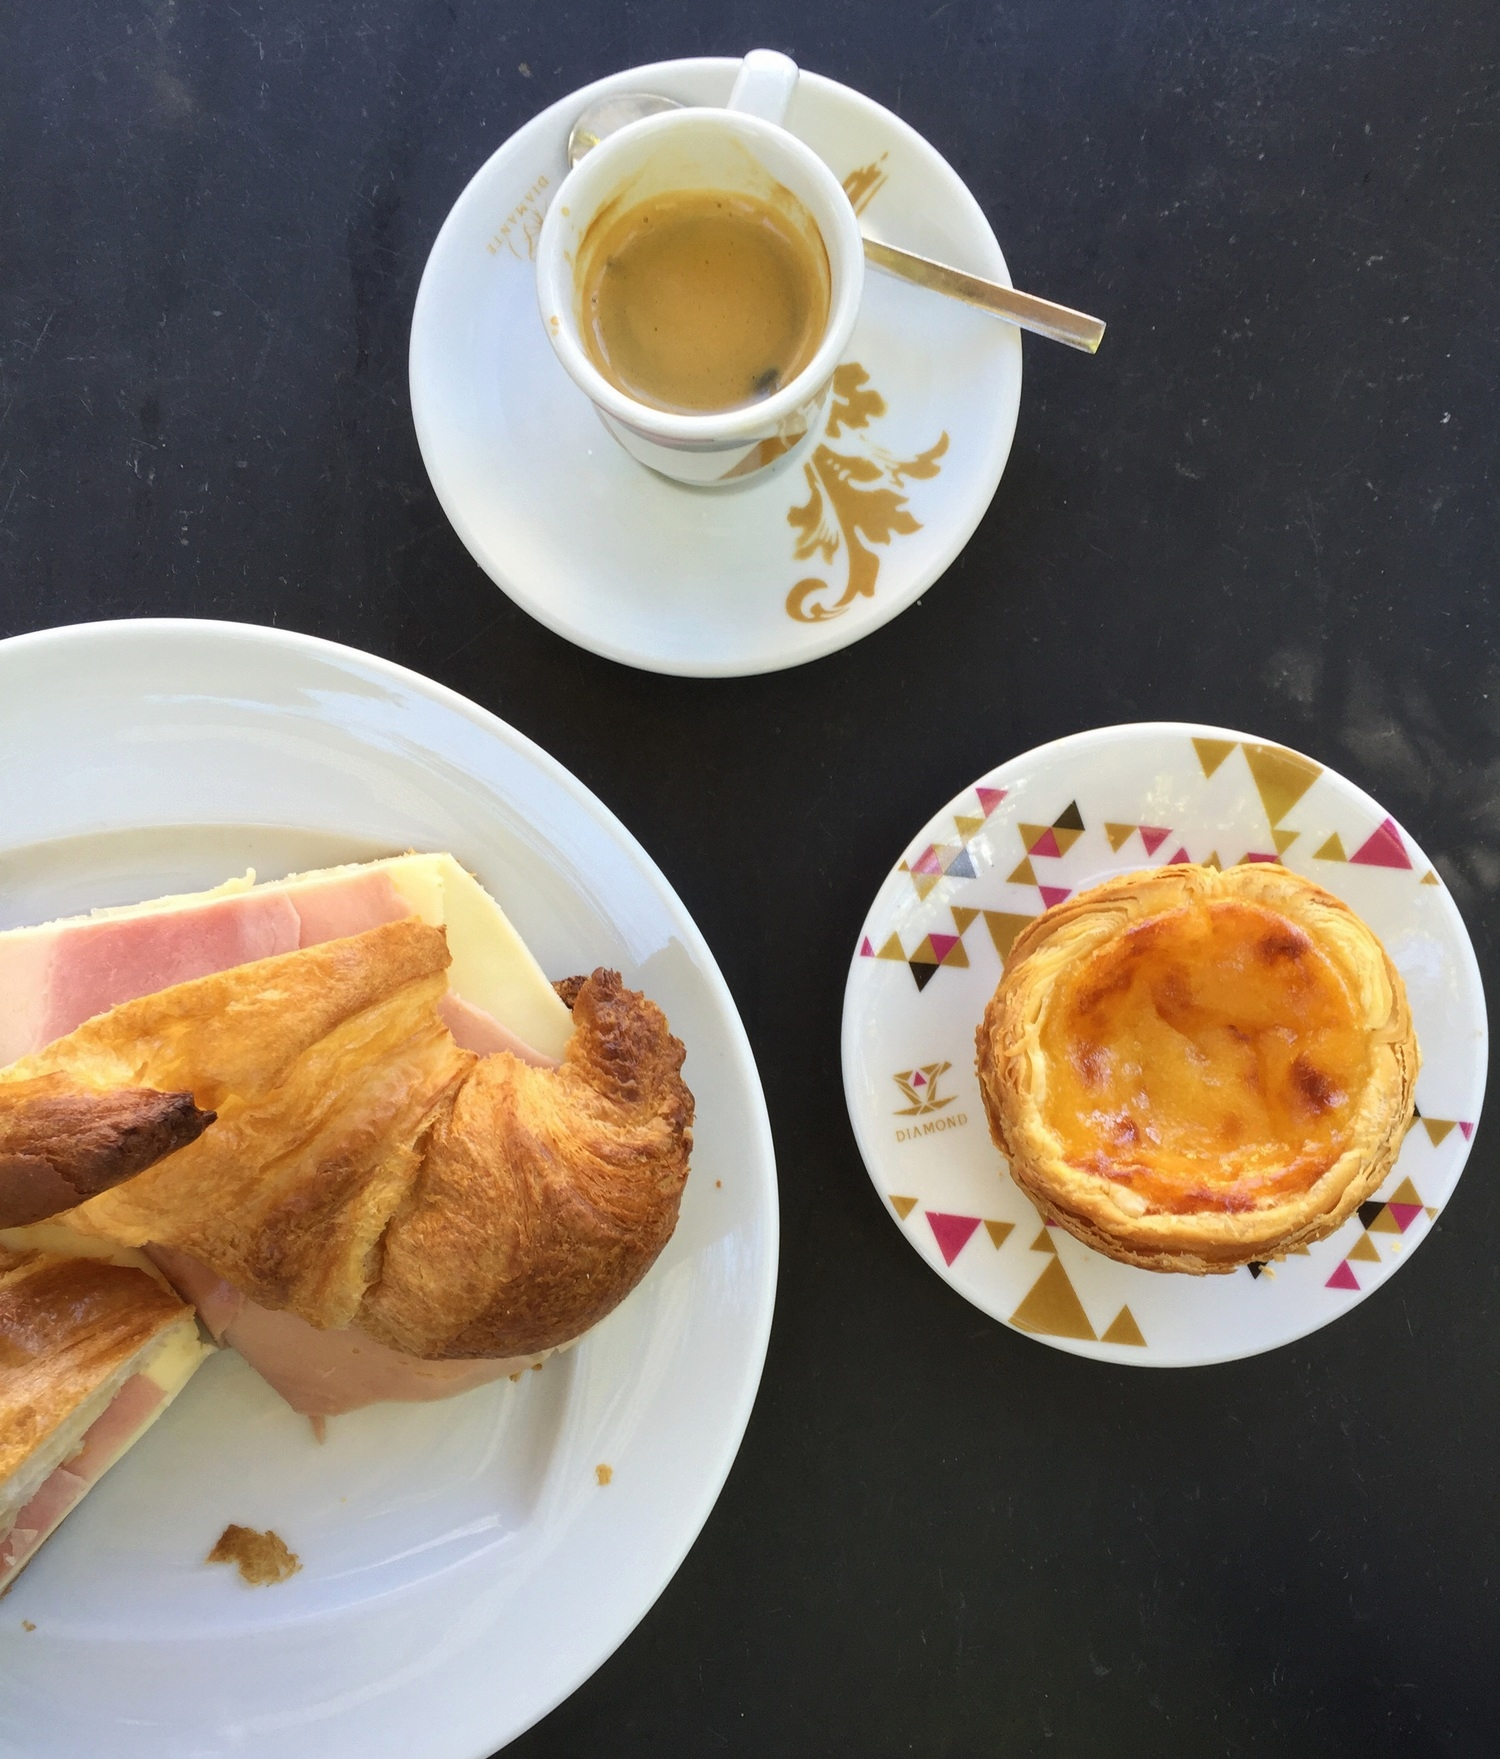 Espresso, pastel de nata with a sprinkle of cinnamon, and a ham and cheese croissant. Portuguese cheese is some of the best I've ever tasted.